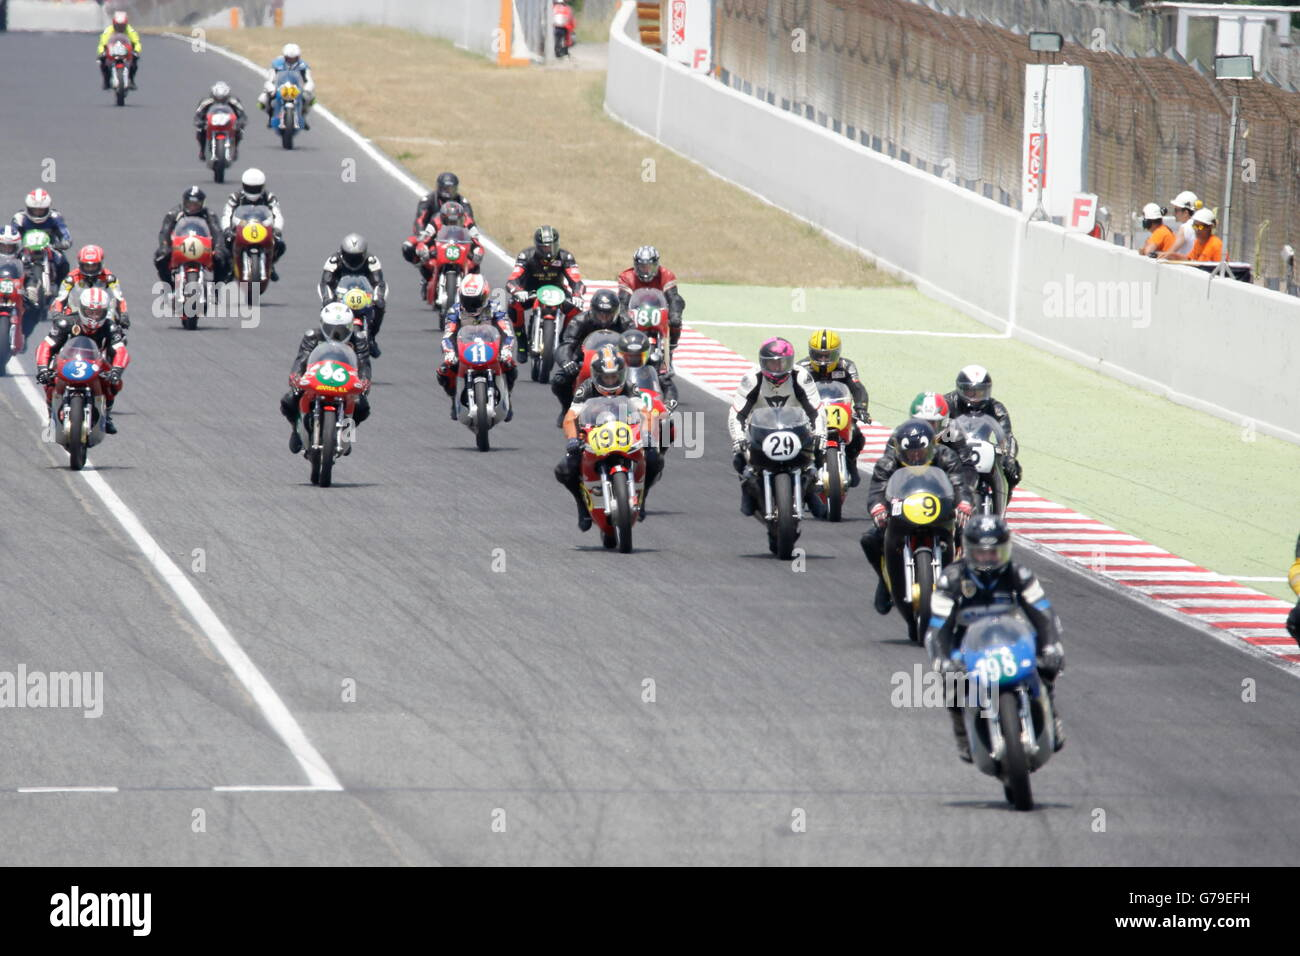 Barcelona, Spain. 26th June, 2016. Start of the Classics 1 race at the Circuit of Catalunya. Credit:  Pablo Guillen/Alamy - Stock Image